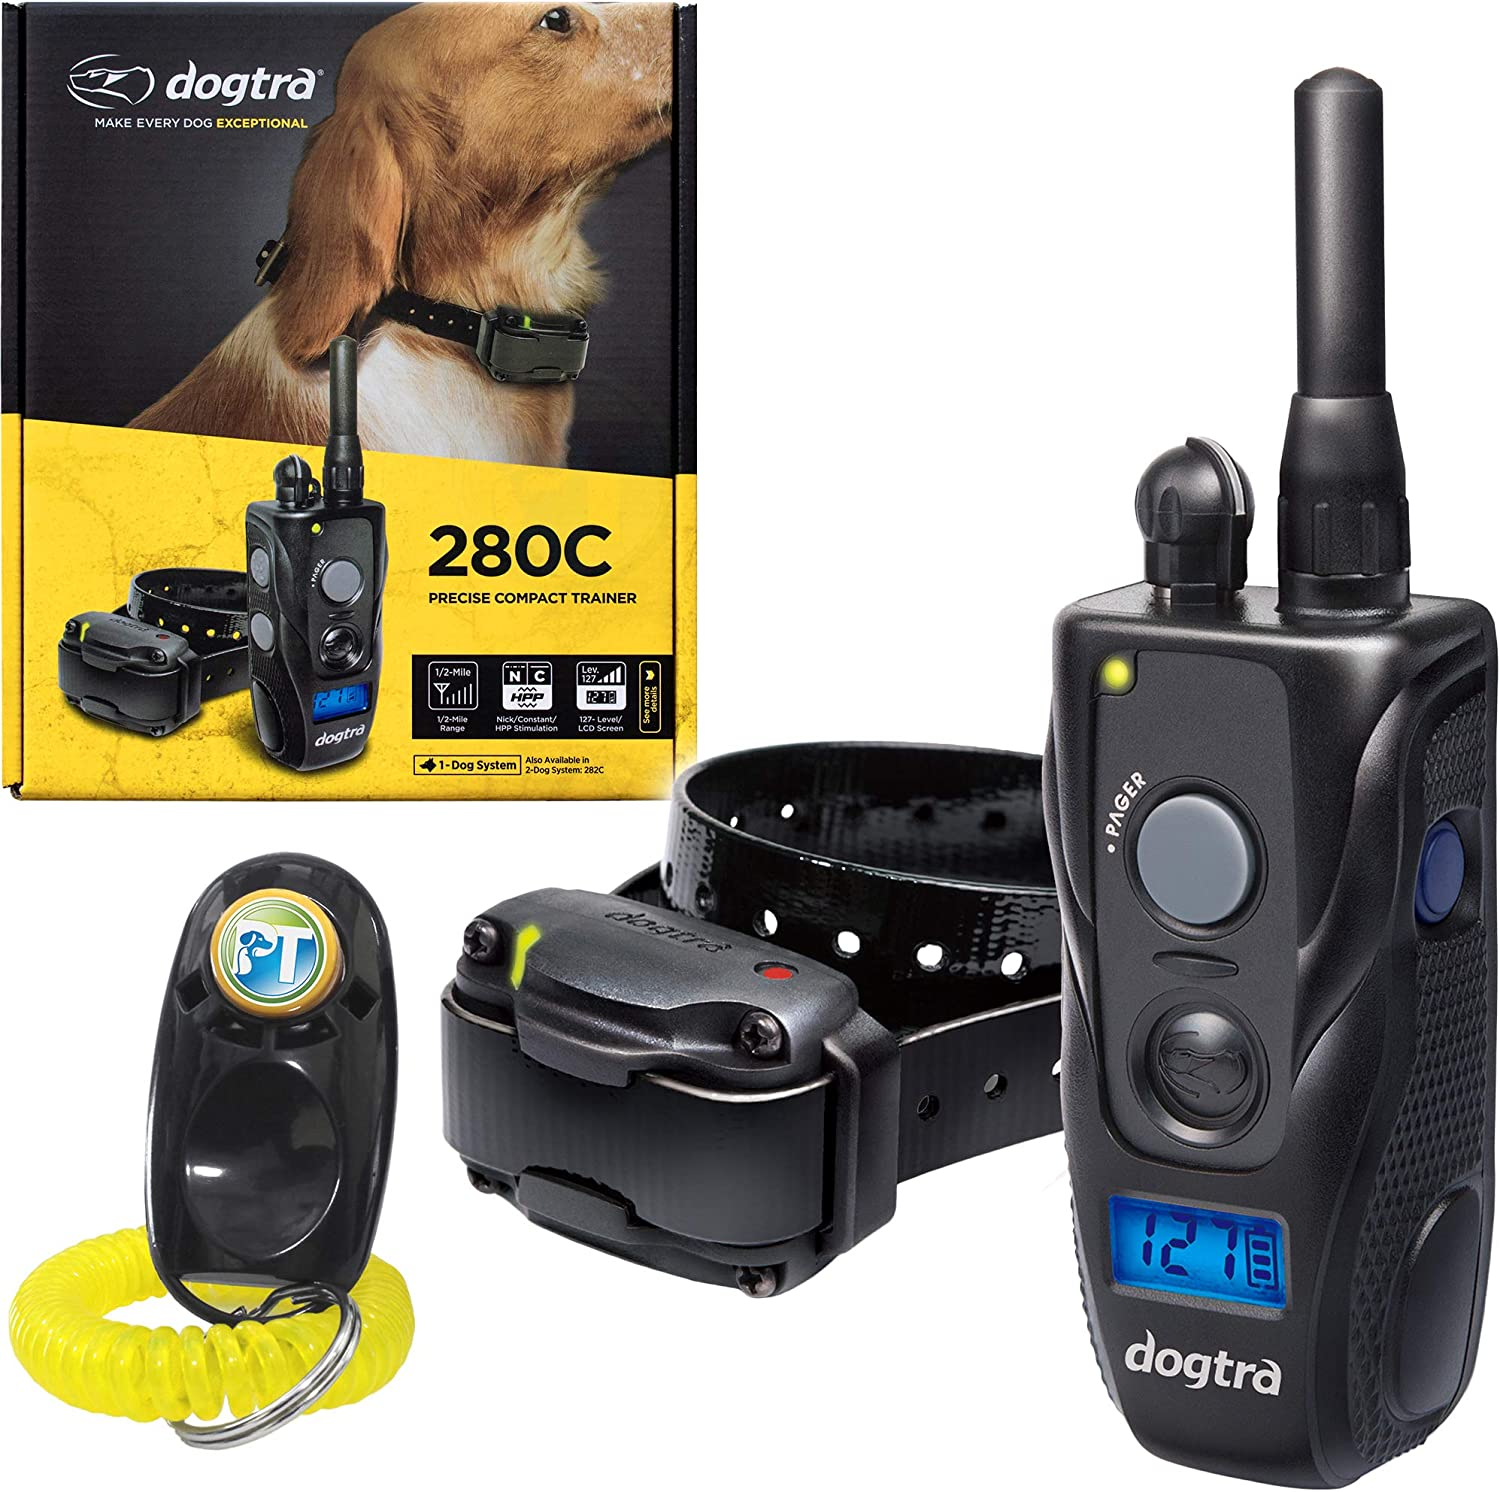 Dogtra 280C, 282C Remote Training Collar – 1 2 Mile Range, Waterproof, Rechargeable, Shock, Vibration – Includes PetsTEK Dog Training Clicker